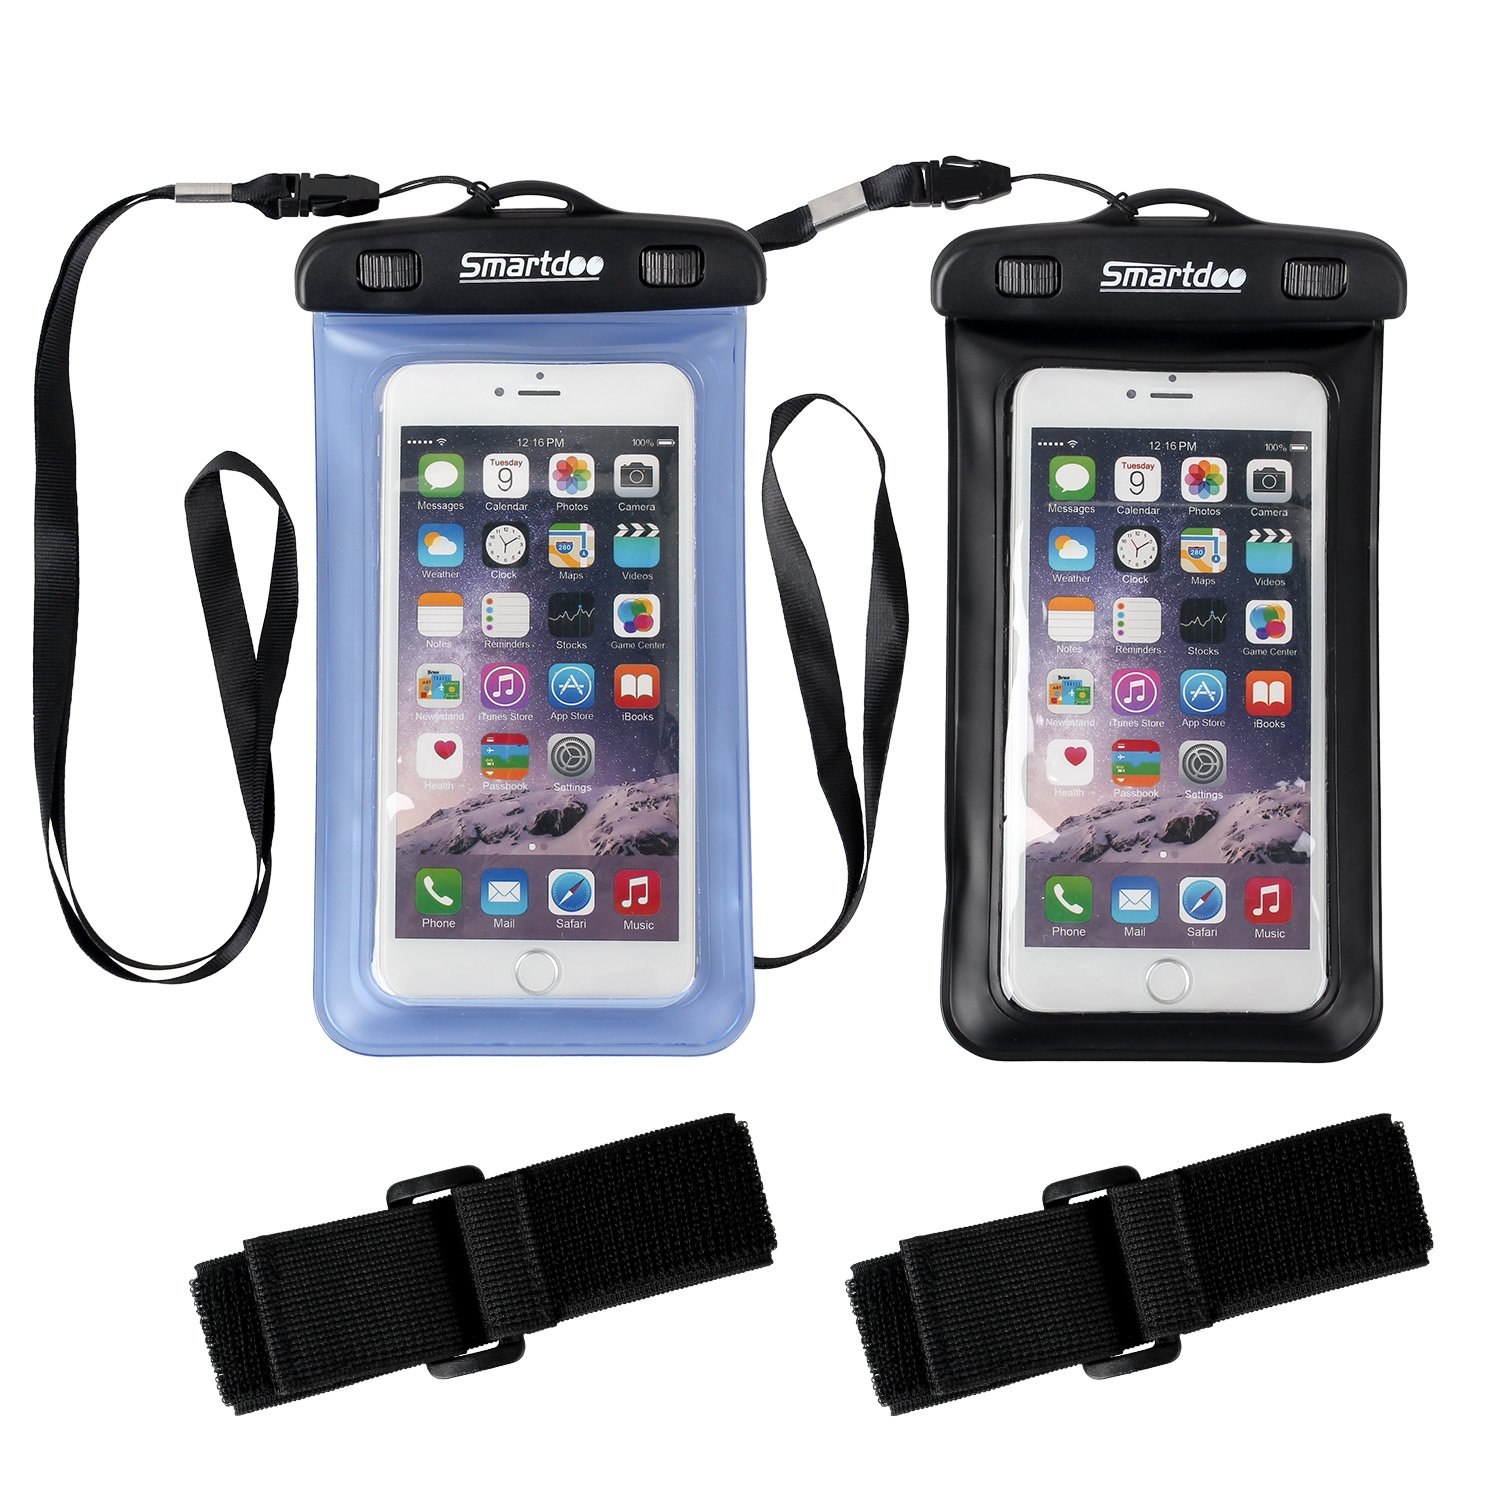 Waterproof Case,2 Pack Smartdoo Waterproof Bag,Best Dry Bag for Apple iPhone 6s, 6 Plus, Samsung Galaxy S6/S6 Edge, Dust Snowproof Pouch,for Men Women Boating/Hiking/Swimming/Diving/Beach(Blue+Black)